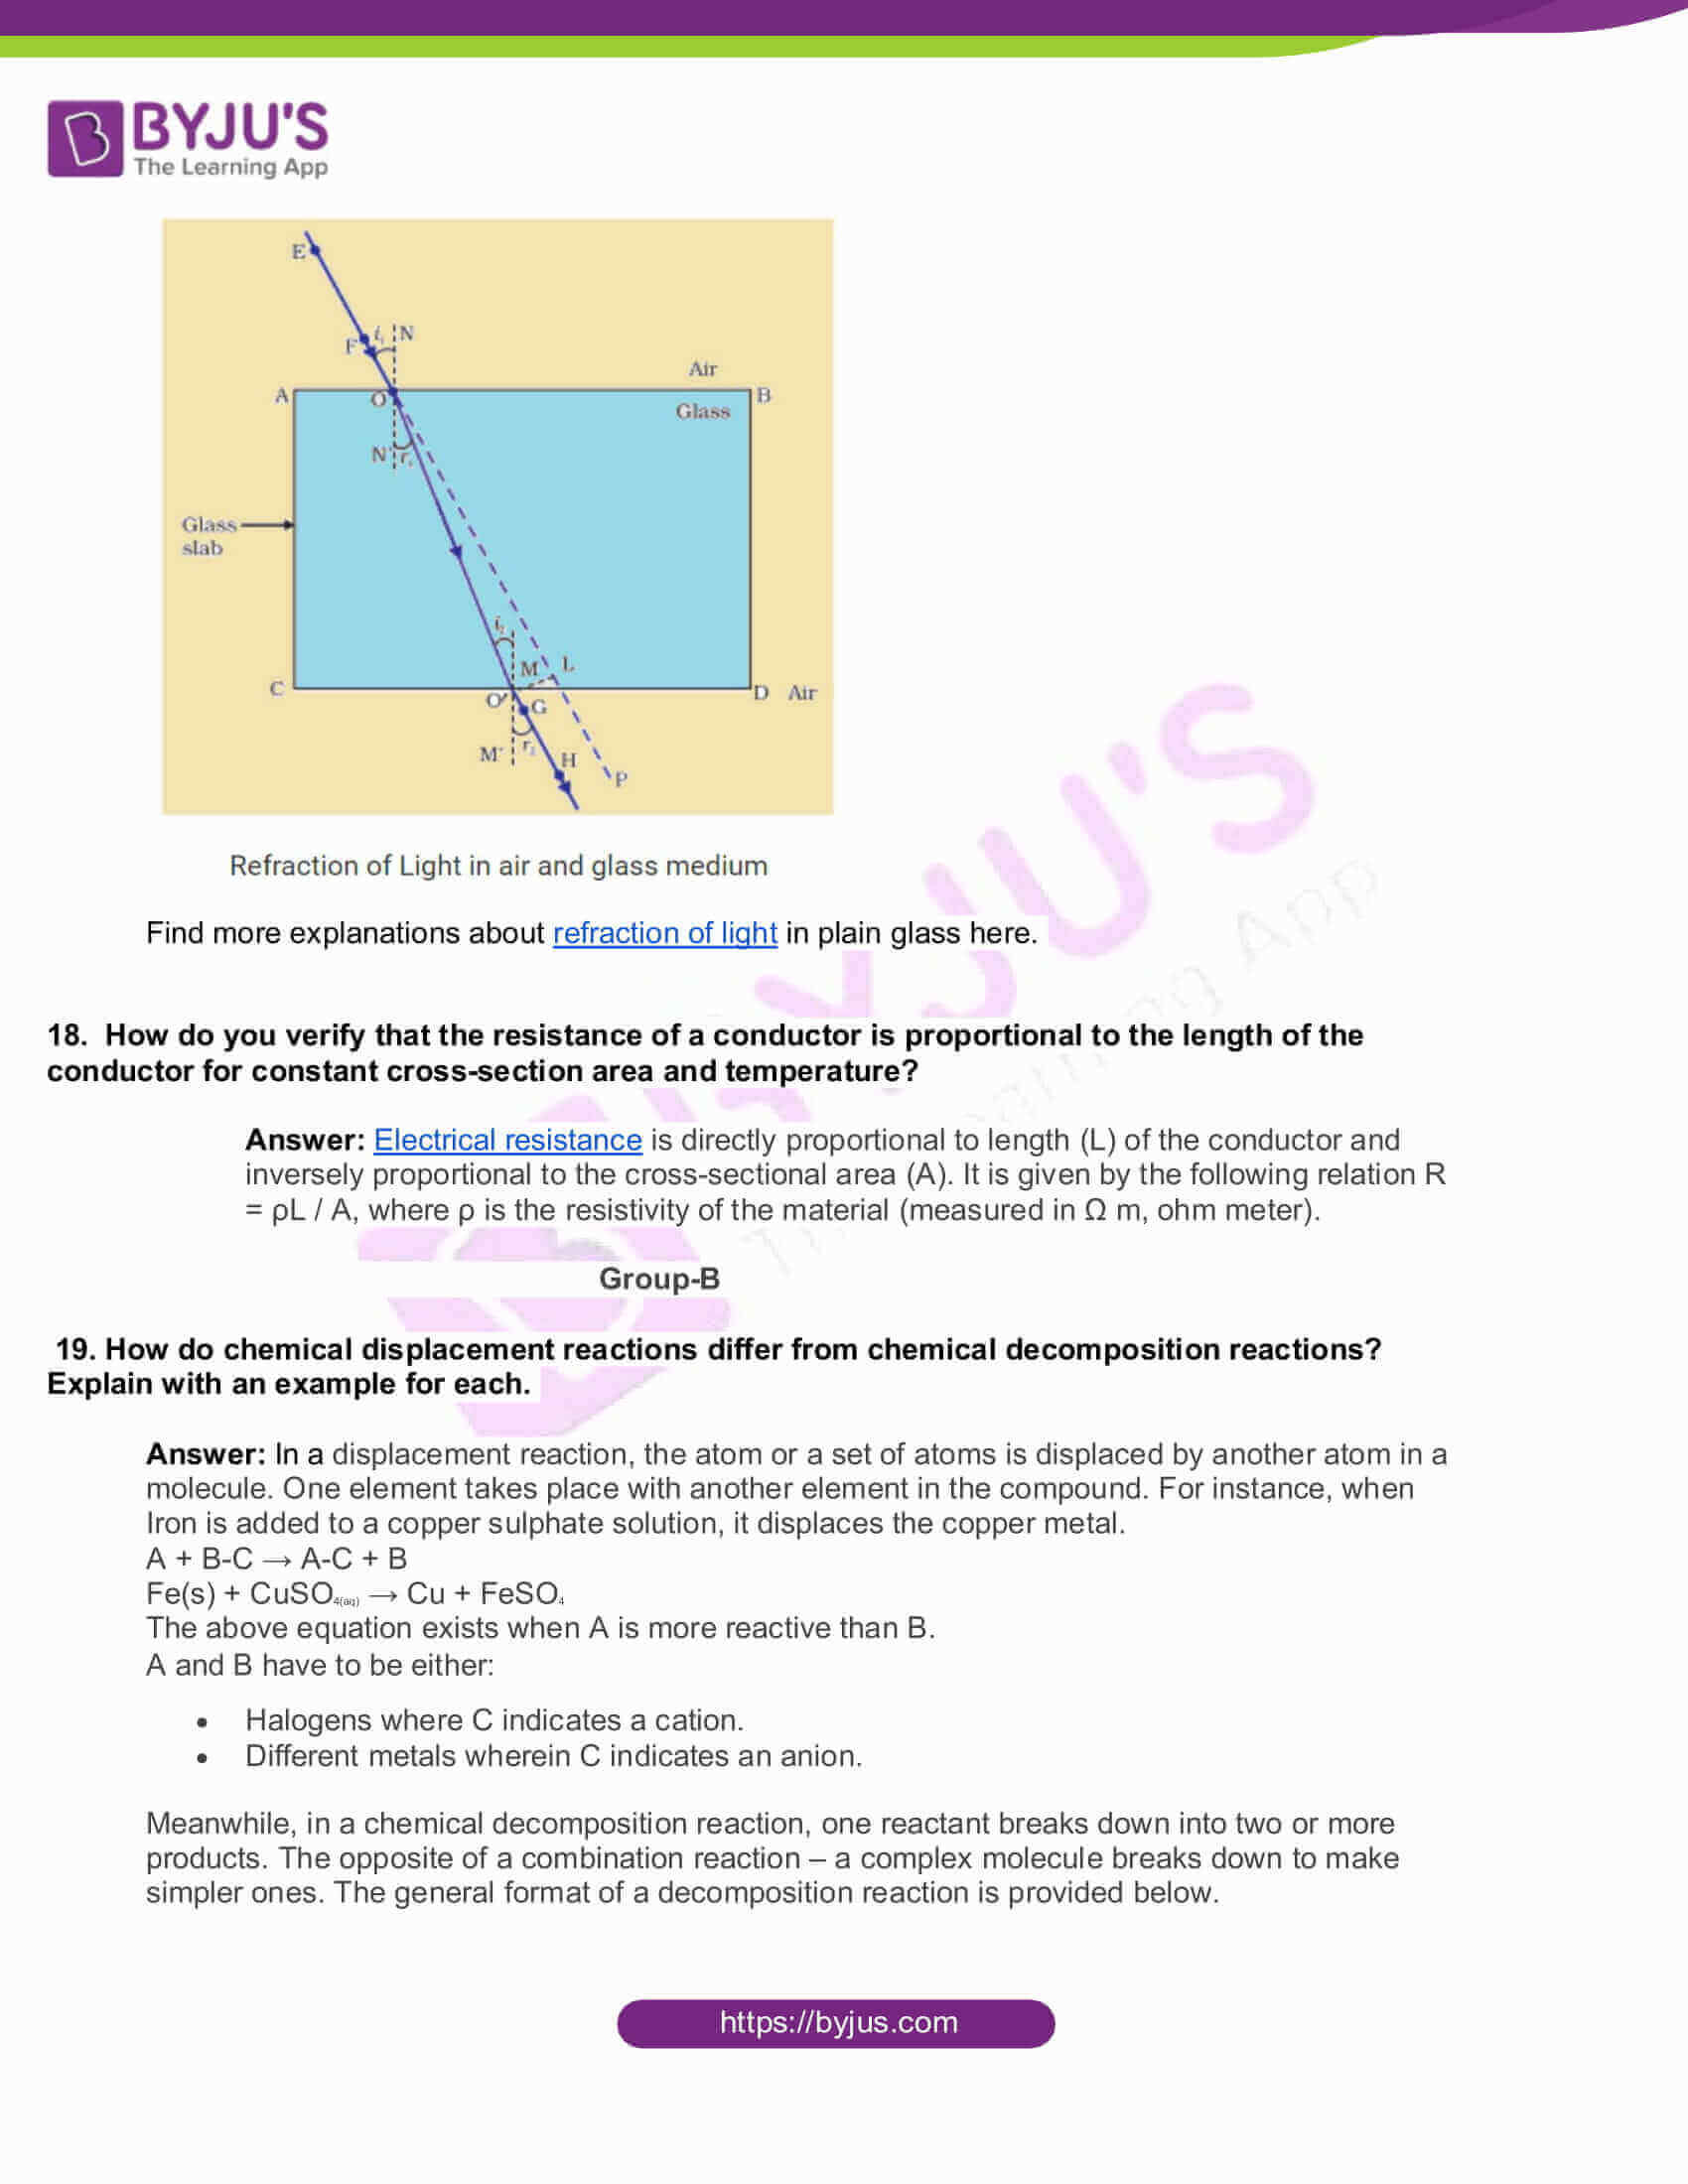 AP Board Class 10 Science Paper 1 2016 Question Paper with Solutions 06